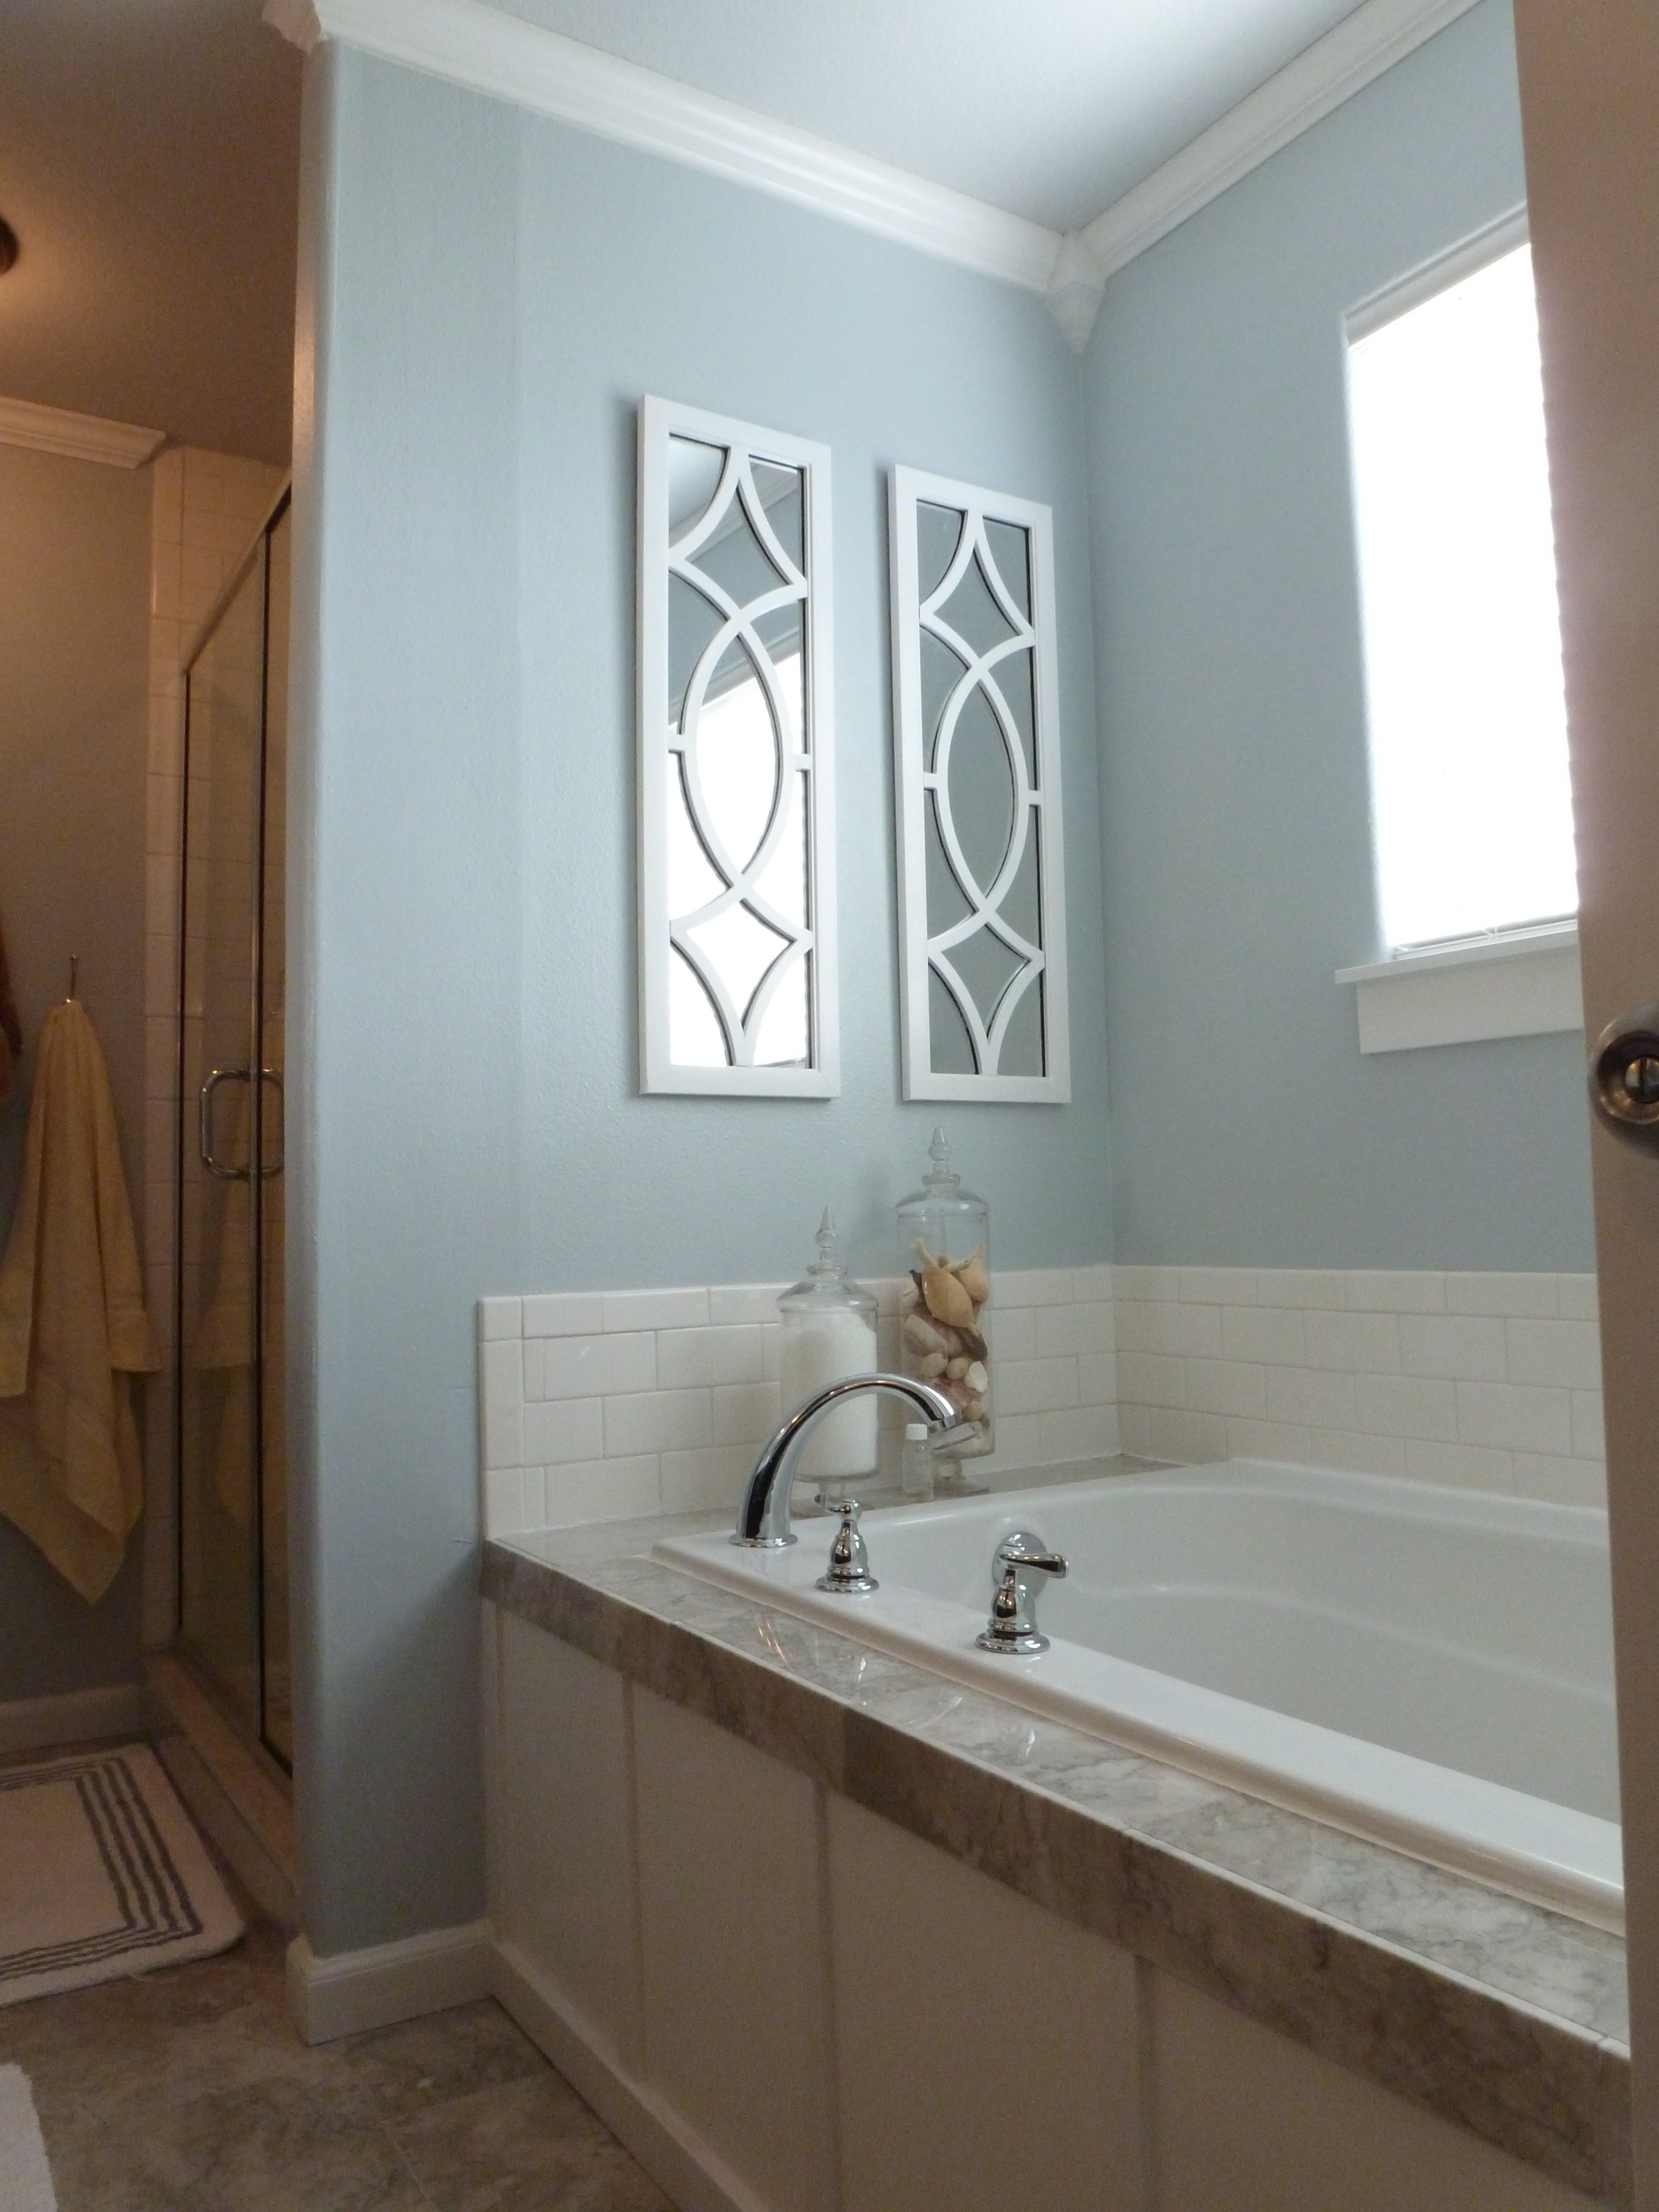 Small Bathroom Remodel Ideas Home Depot home depot bathroom remodeling. bath remodel. home depot bathroom